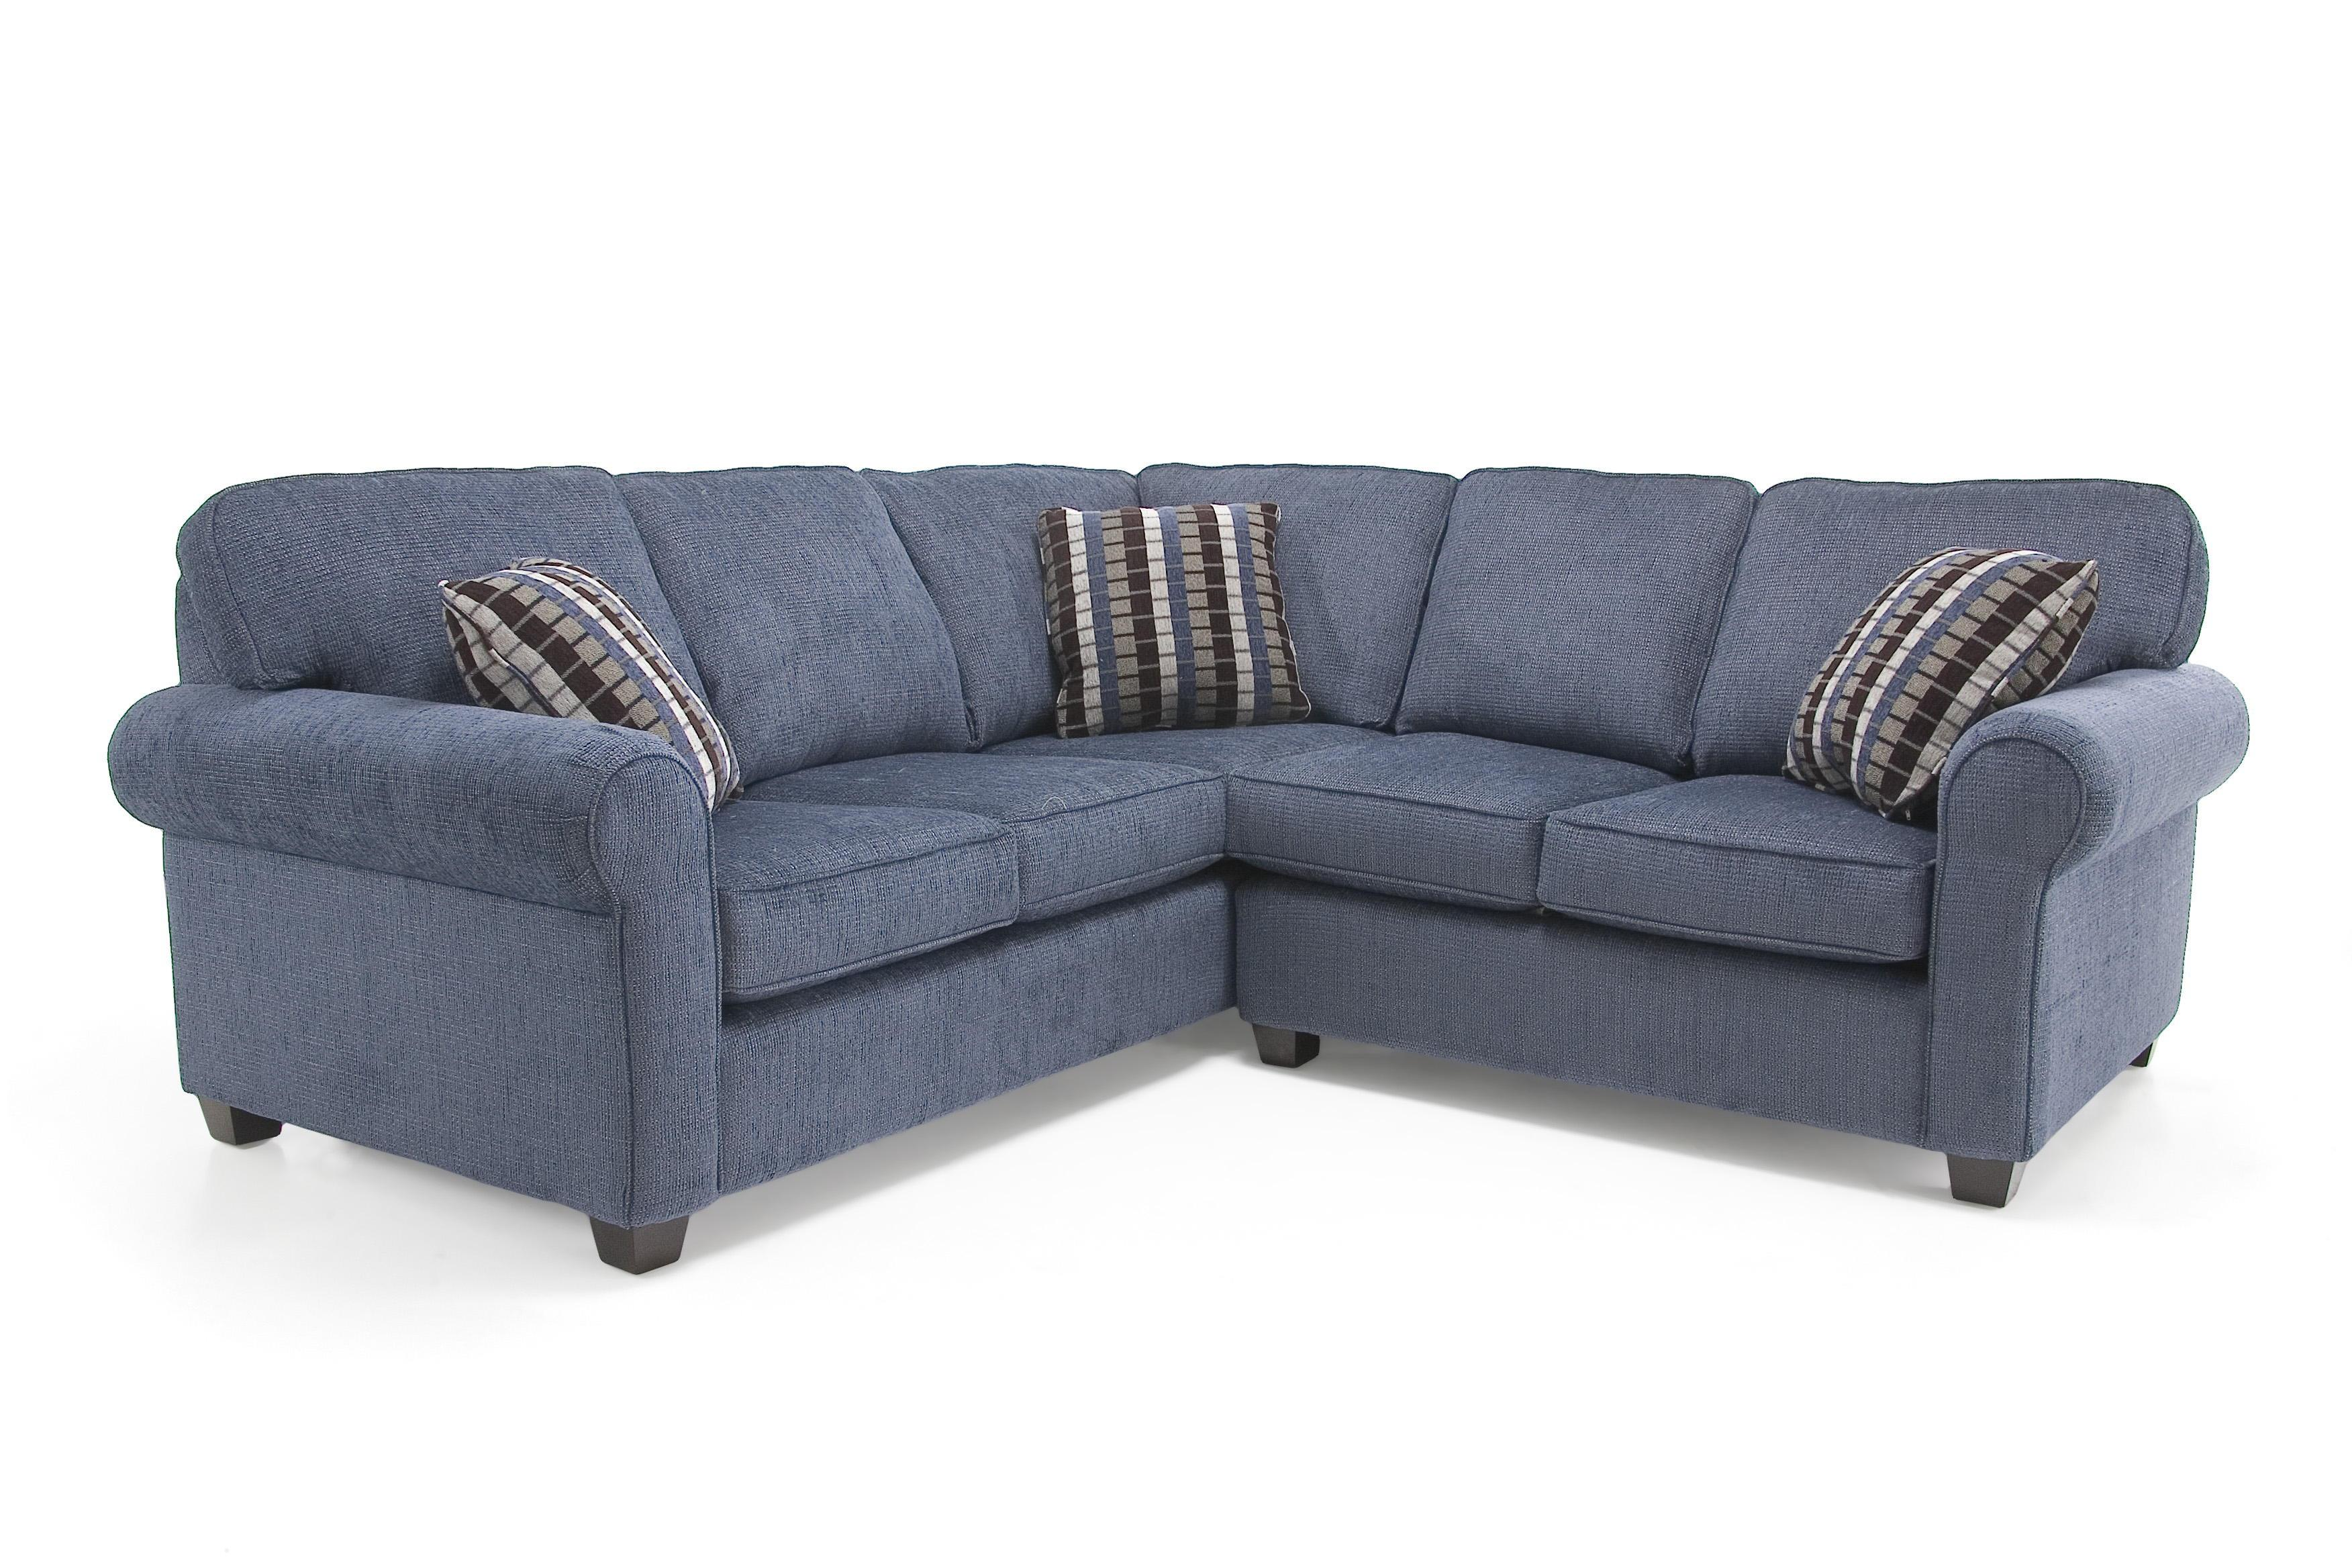 2576 Transitional Sectional Sofa by Decor-Rest at Stoney Creek Furniture